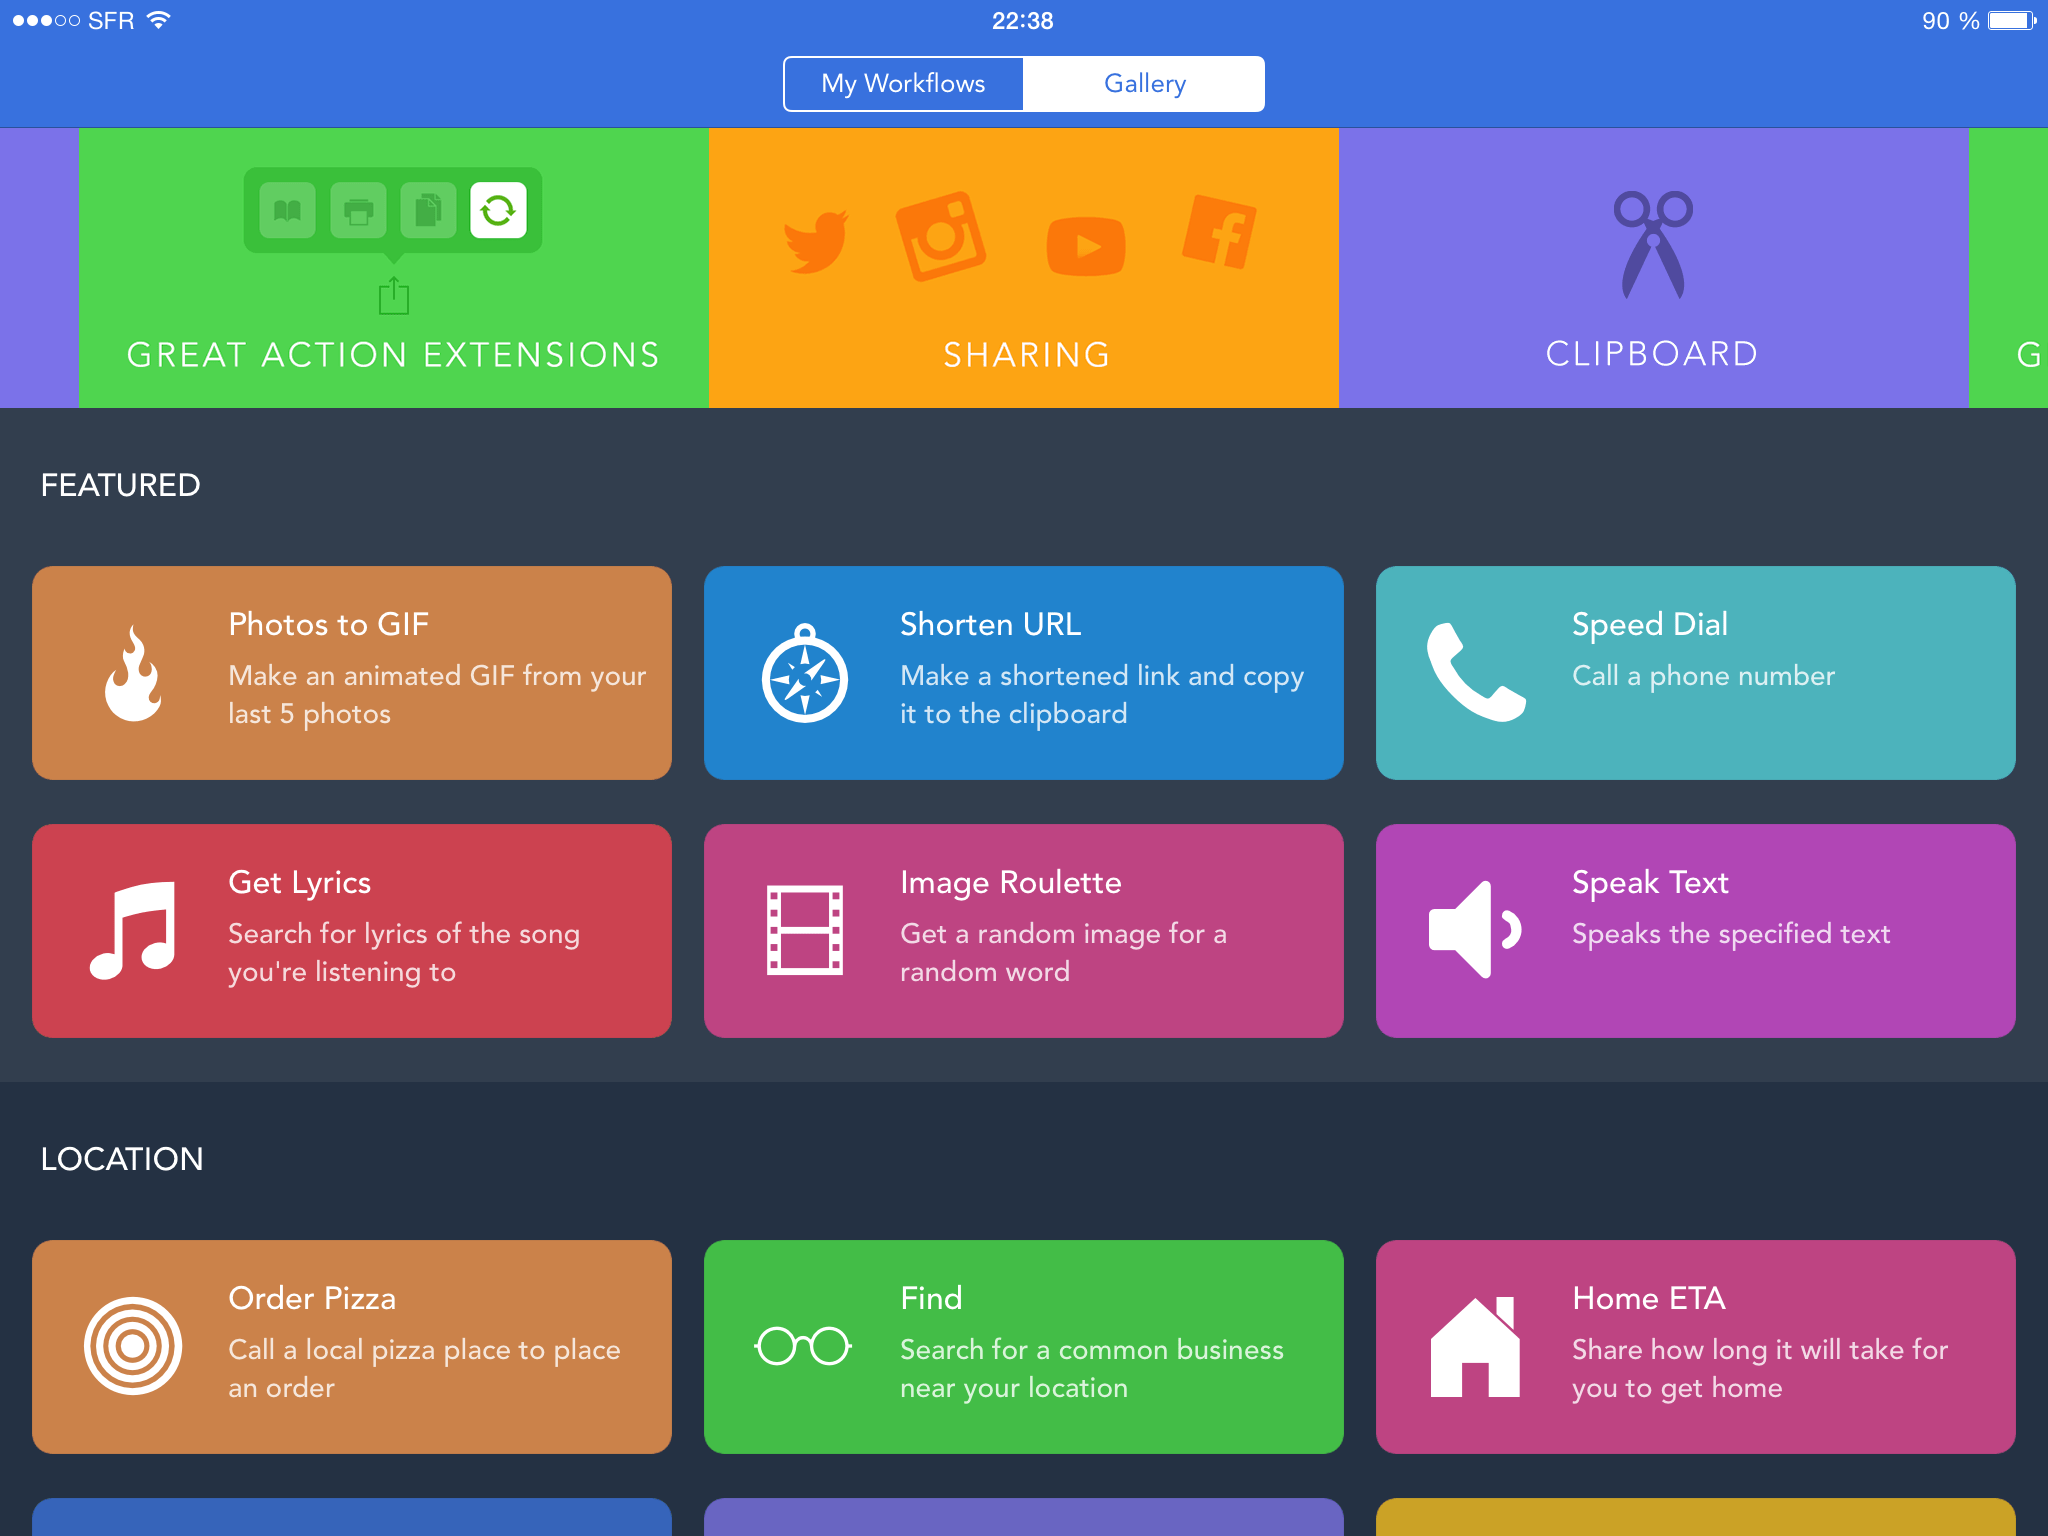 galerie-extensions-actions-workflow-ios